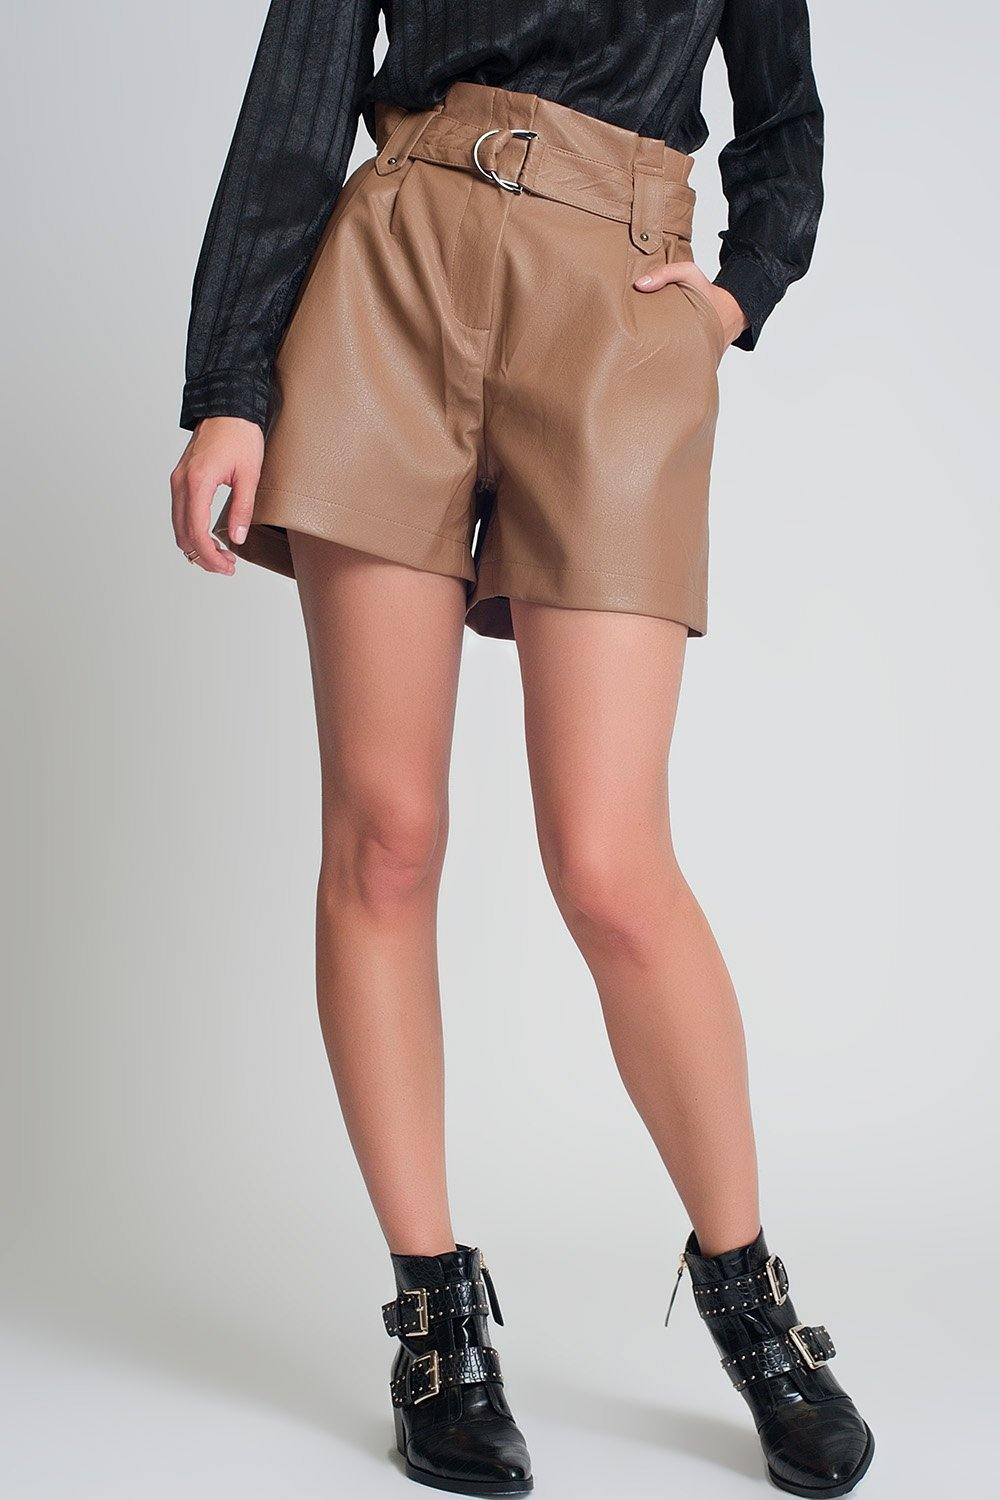 Q2 Belted faux leather shorts in camel